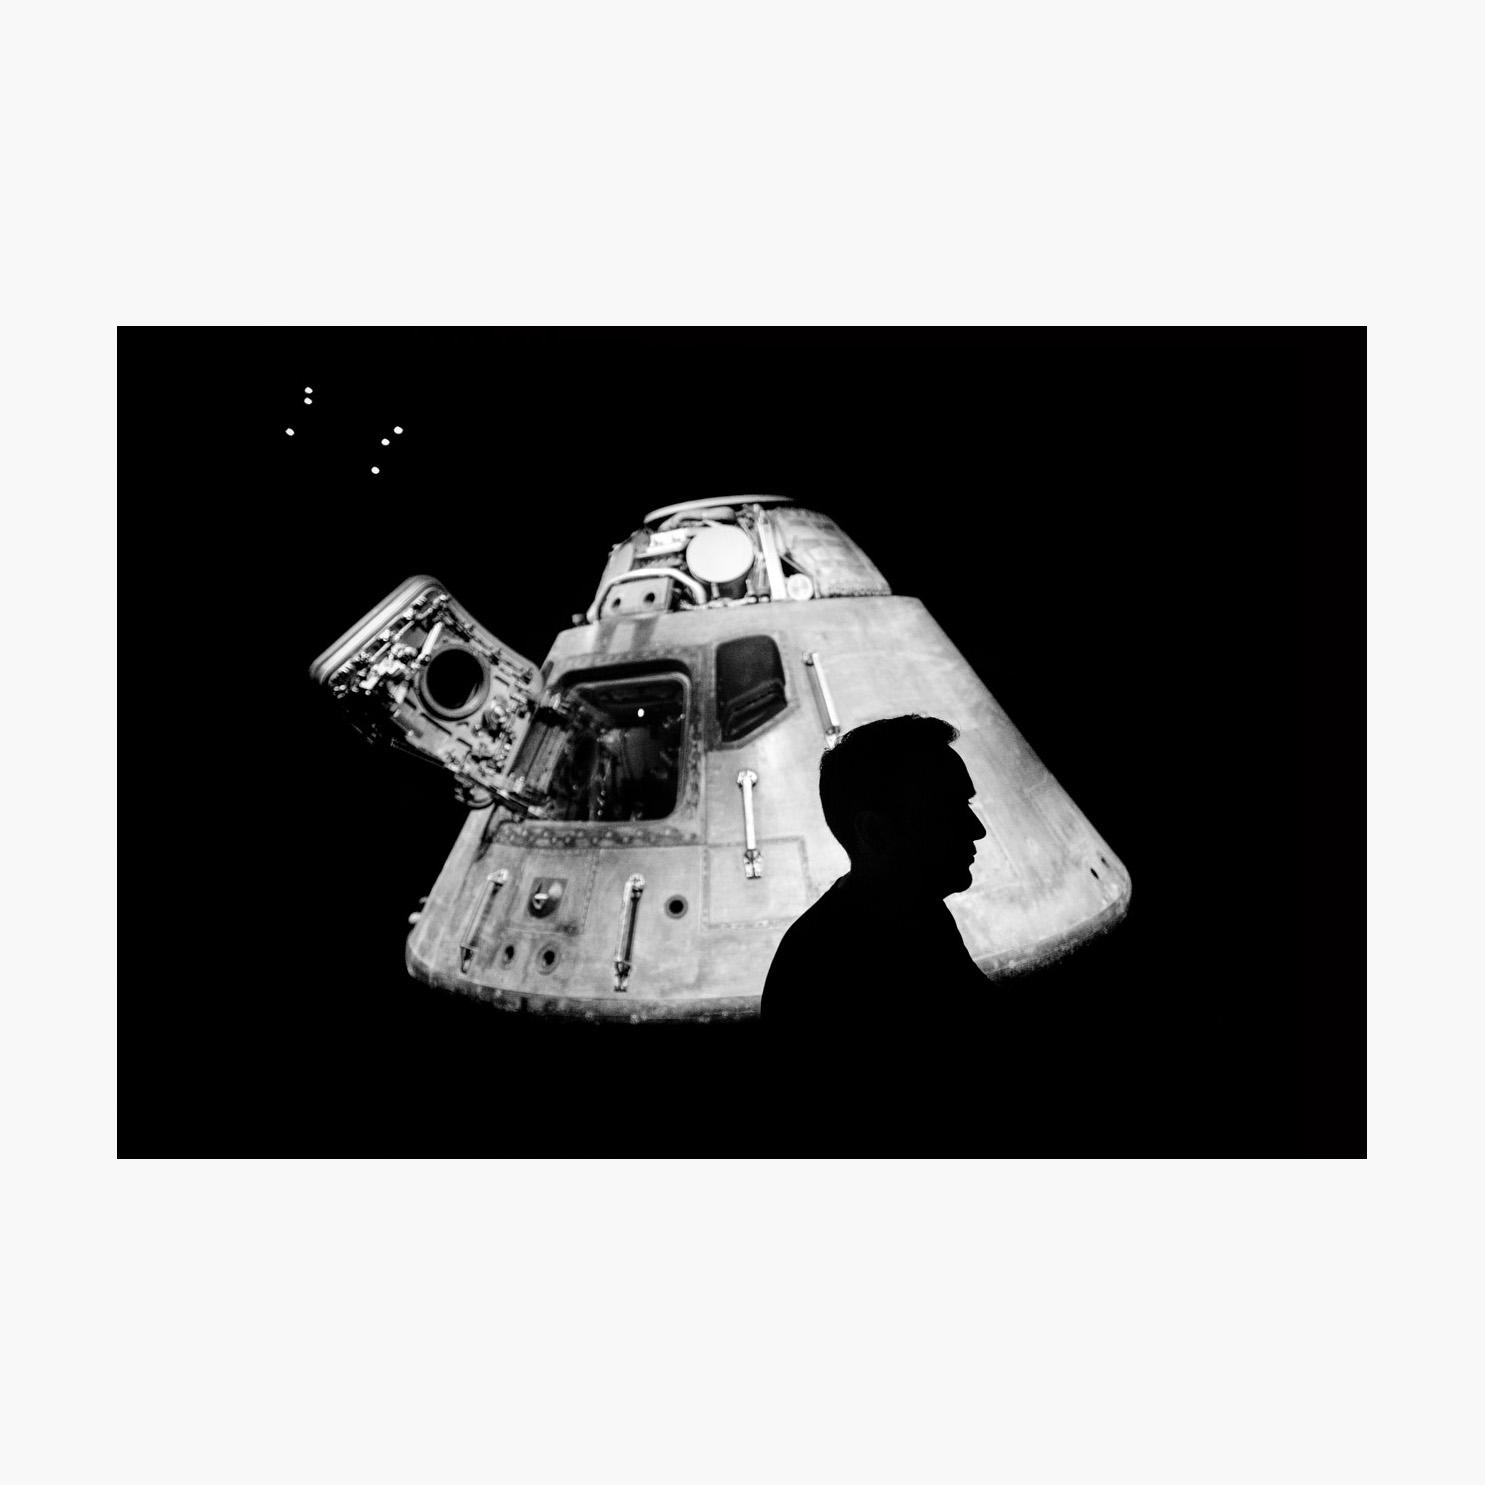 @harrywedmonds  Cape Canaveral, Florida, USA June 2017  I've always been captivated by science and science fiction so a visit to Florida's space coast was a real highlight for me. I knew exactly what I wanted when I saw the Apollo 14 Command Module, although getting it wasn't easy. But that's the buzz of street photography.  What I love about this image is the feel of an era. The film grain, the soft focus of the background, and the tones of grey evoke 1960s space exploration. Juxtaposed against that crisp (candid) silhouette. The artificial lights hanging above like a distant constellation are perhaps my favourite detail.  Photographed using the  FujiFilm X-T2  and the  XF16 F1.4 WR .